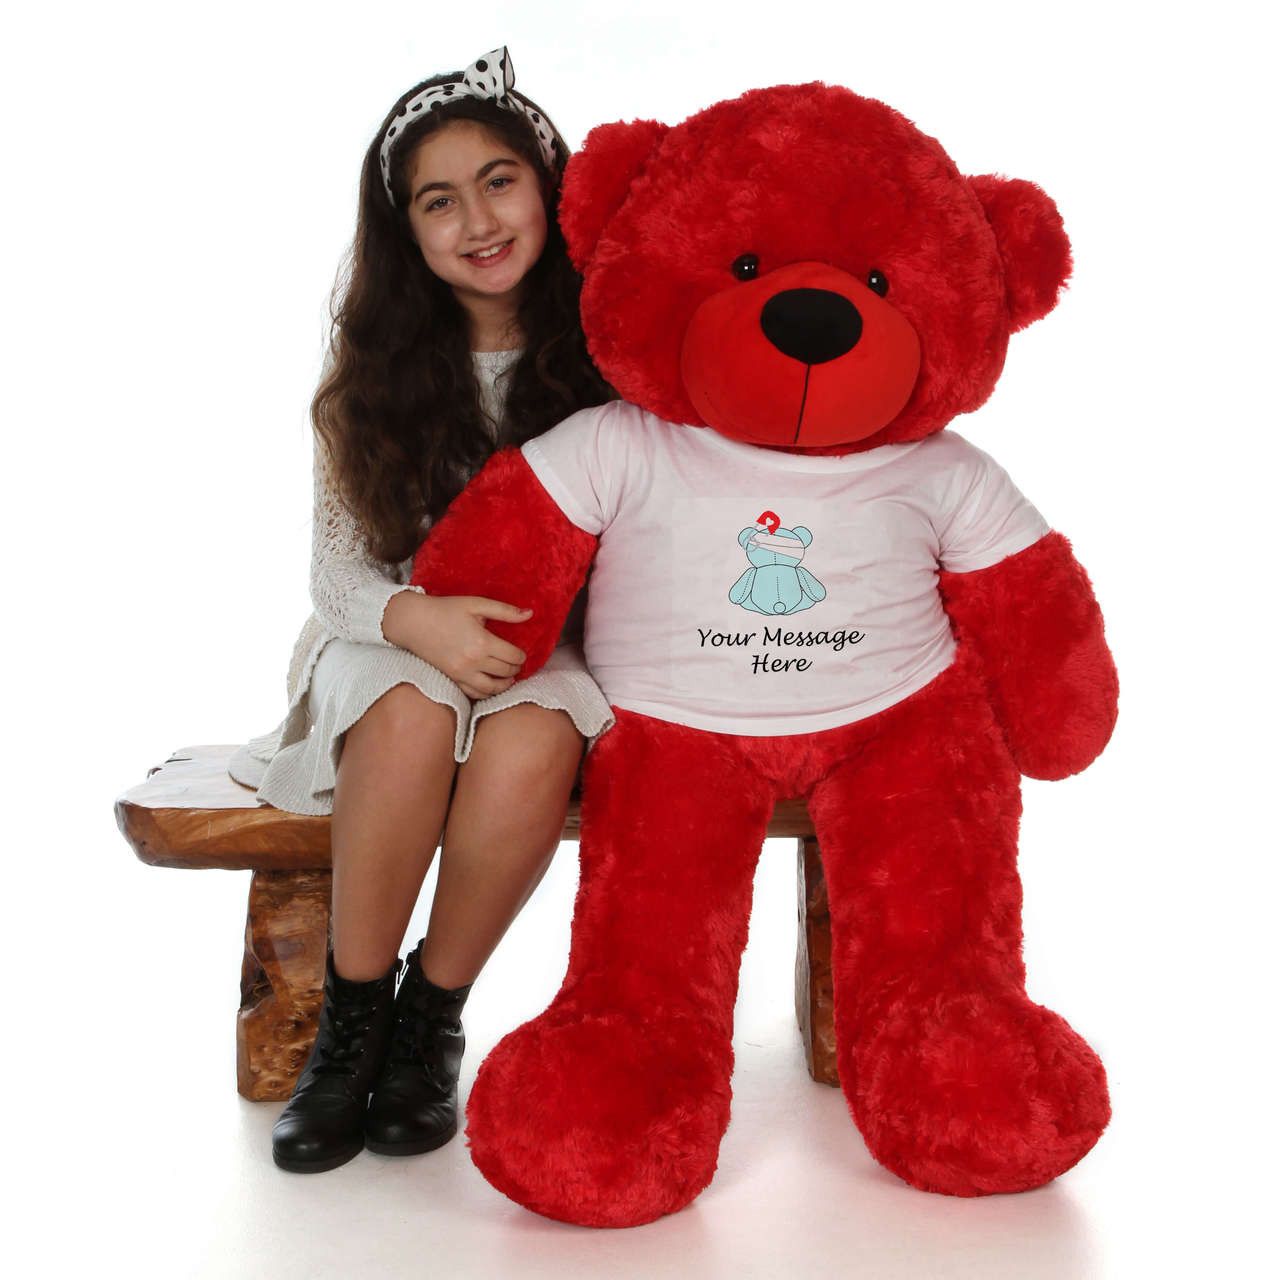 4 Foot  Adorable Red Teddy Bear with Bandage Get Well Soon T-shirt